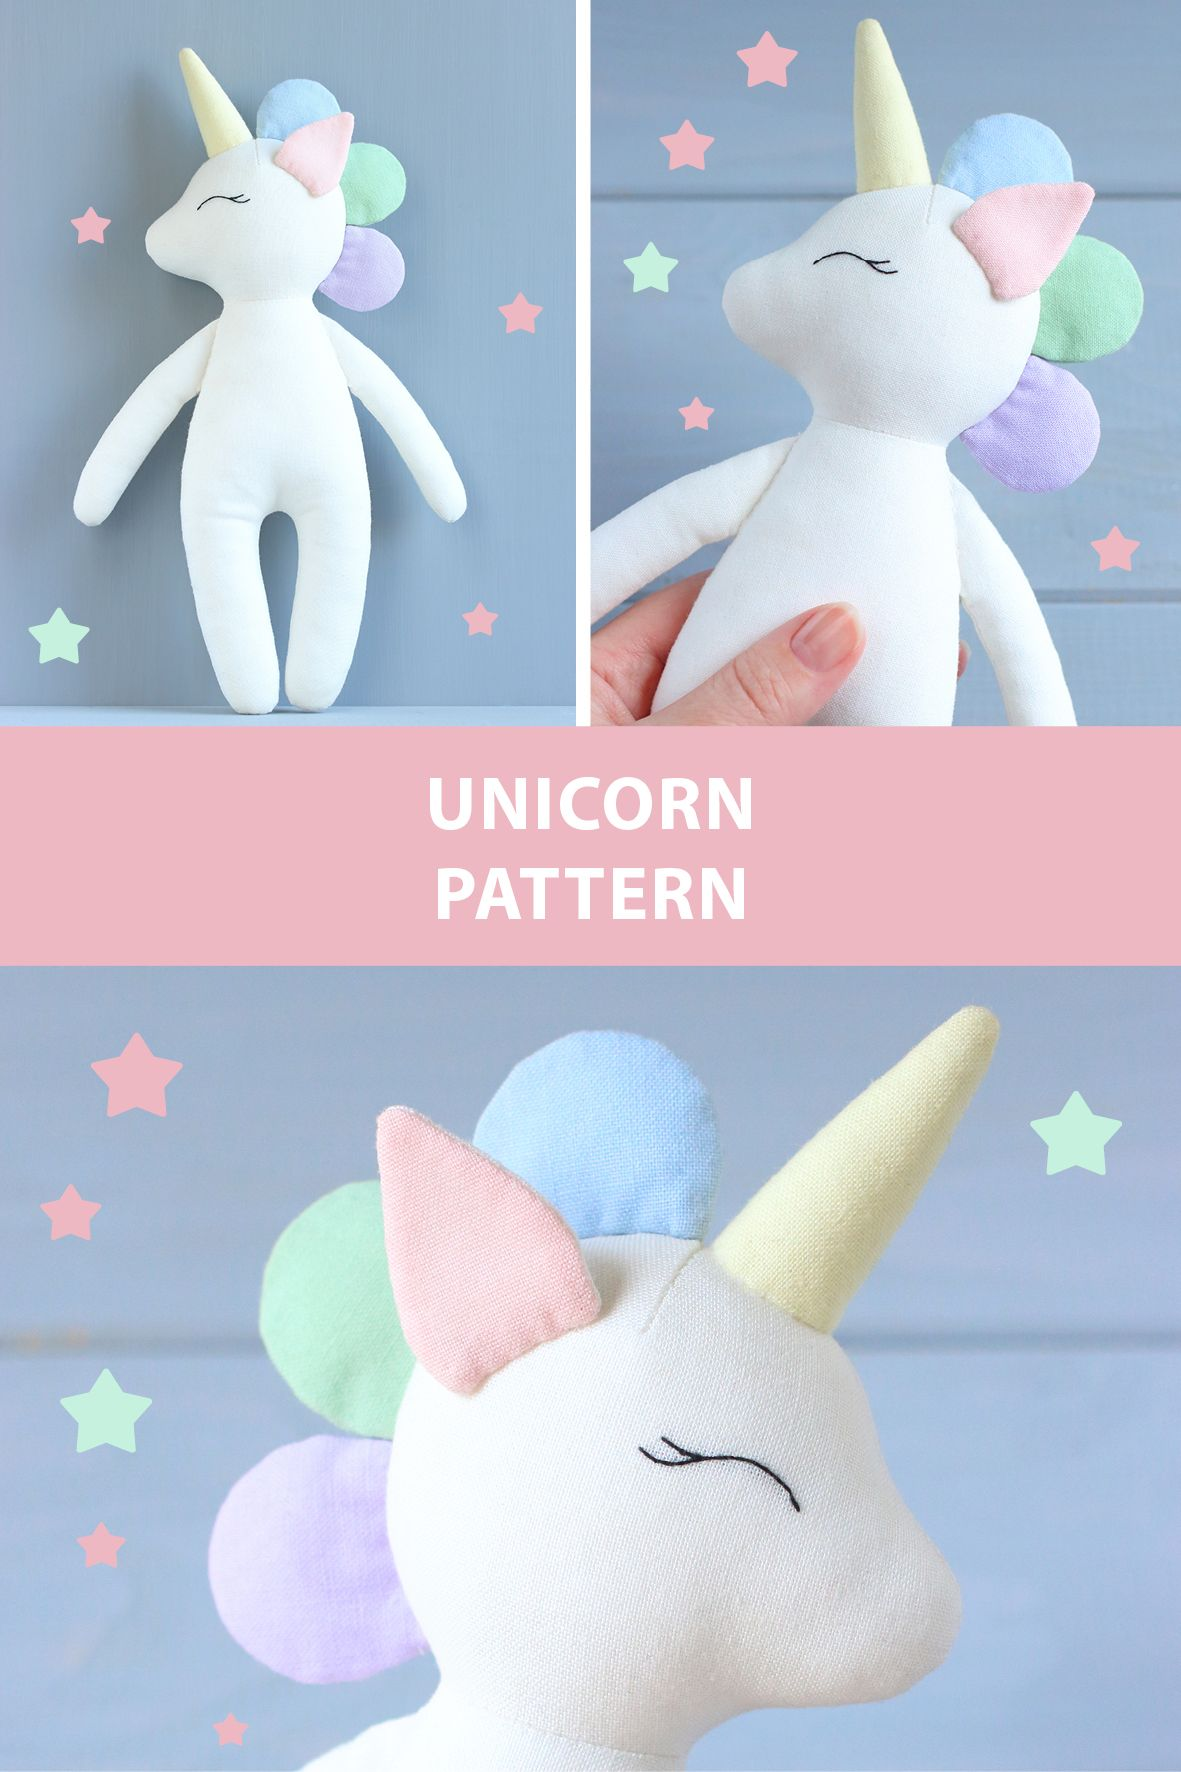 Unicorn Pattern Unique Inspiration Design